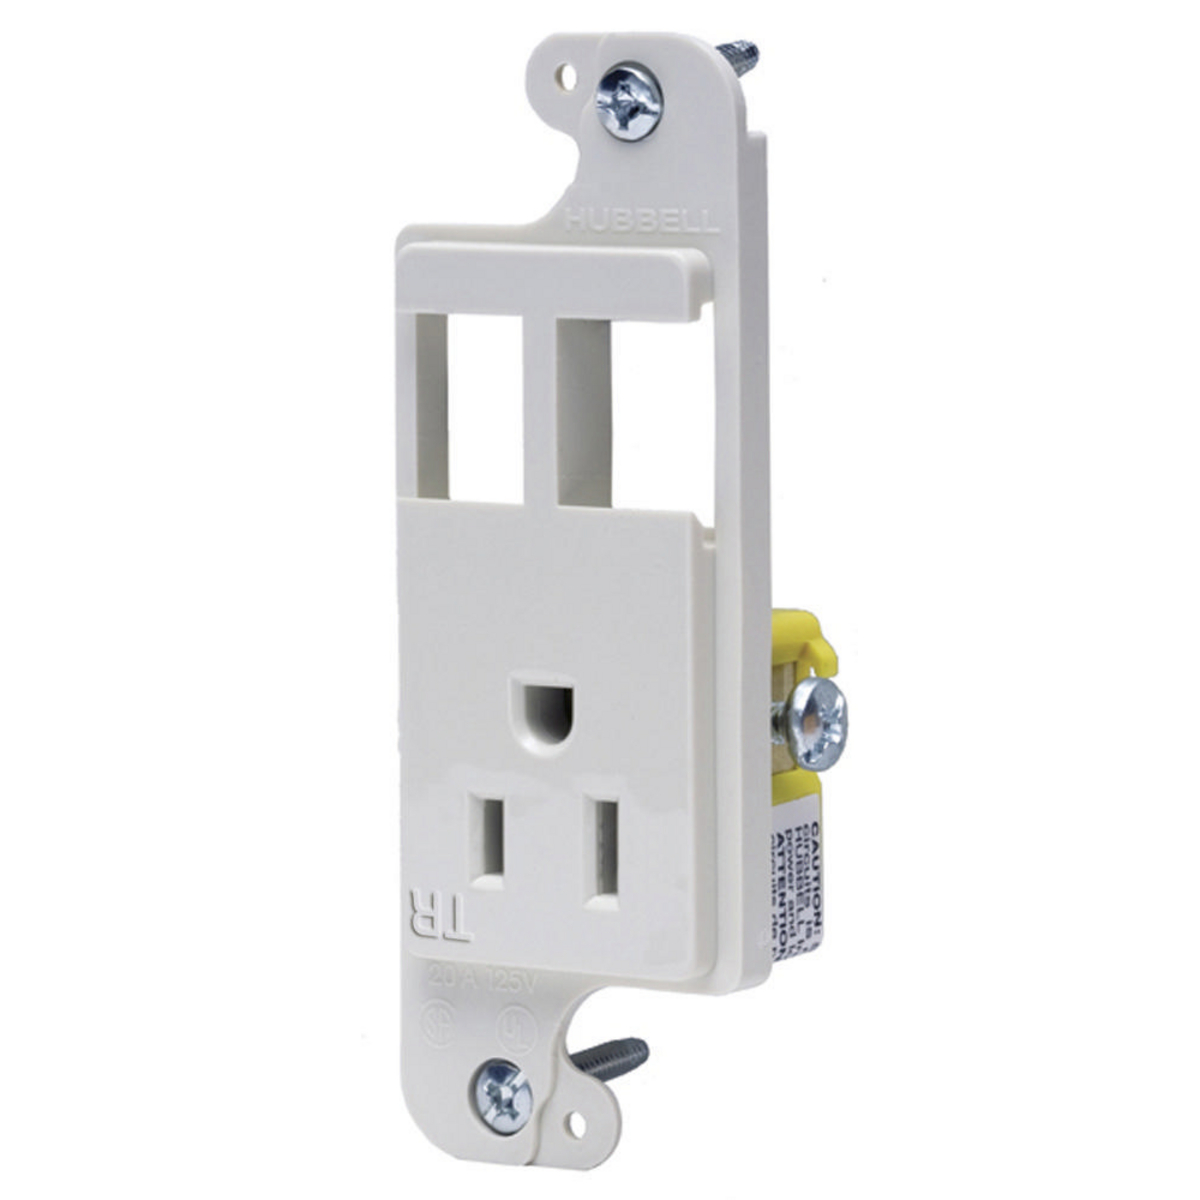 Hubbell RJ65WTR JLOAD 15A RECEPT TR & 2 PORTS, WHITE